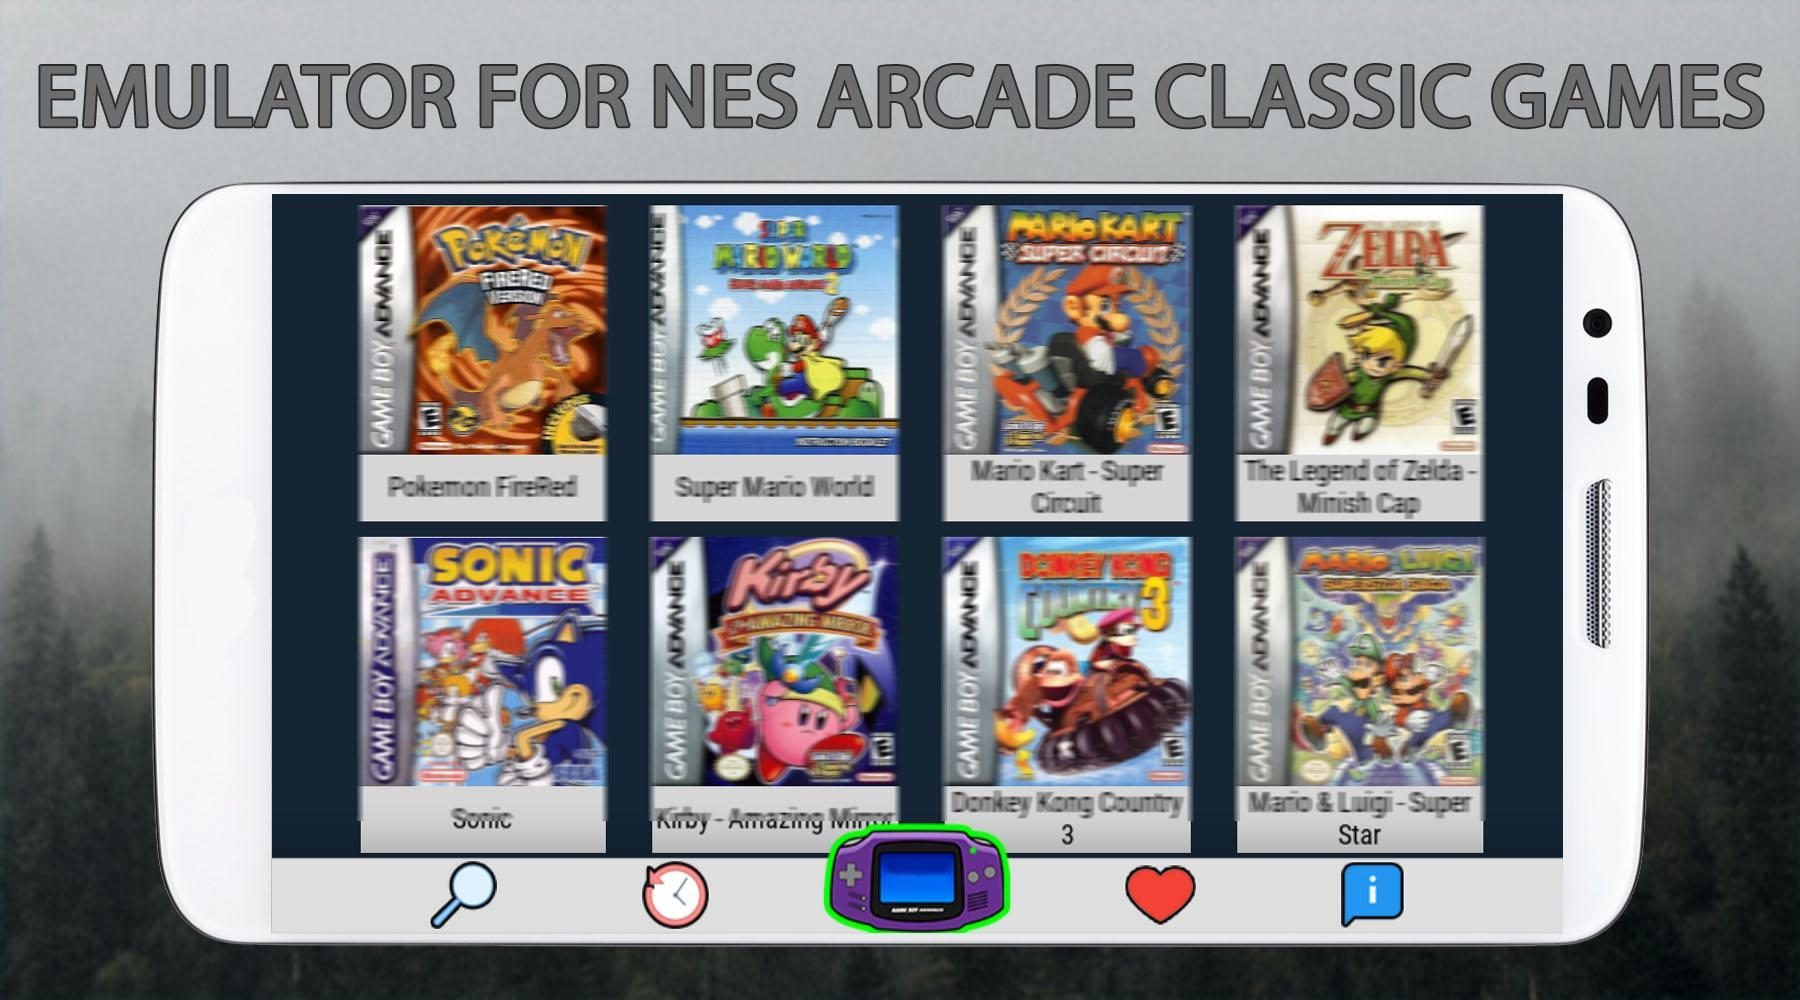 Emulator For NES - Old Arcade Games Free for Android - APK